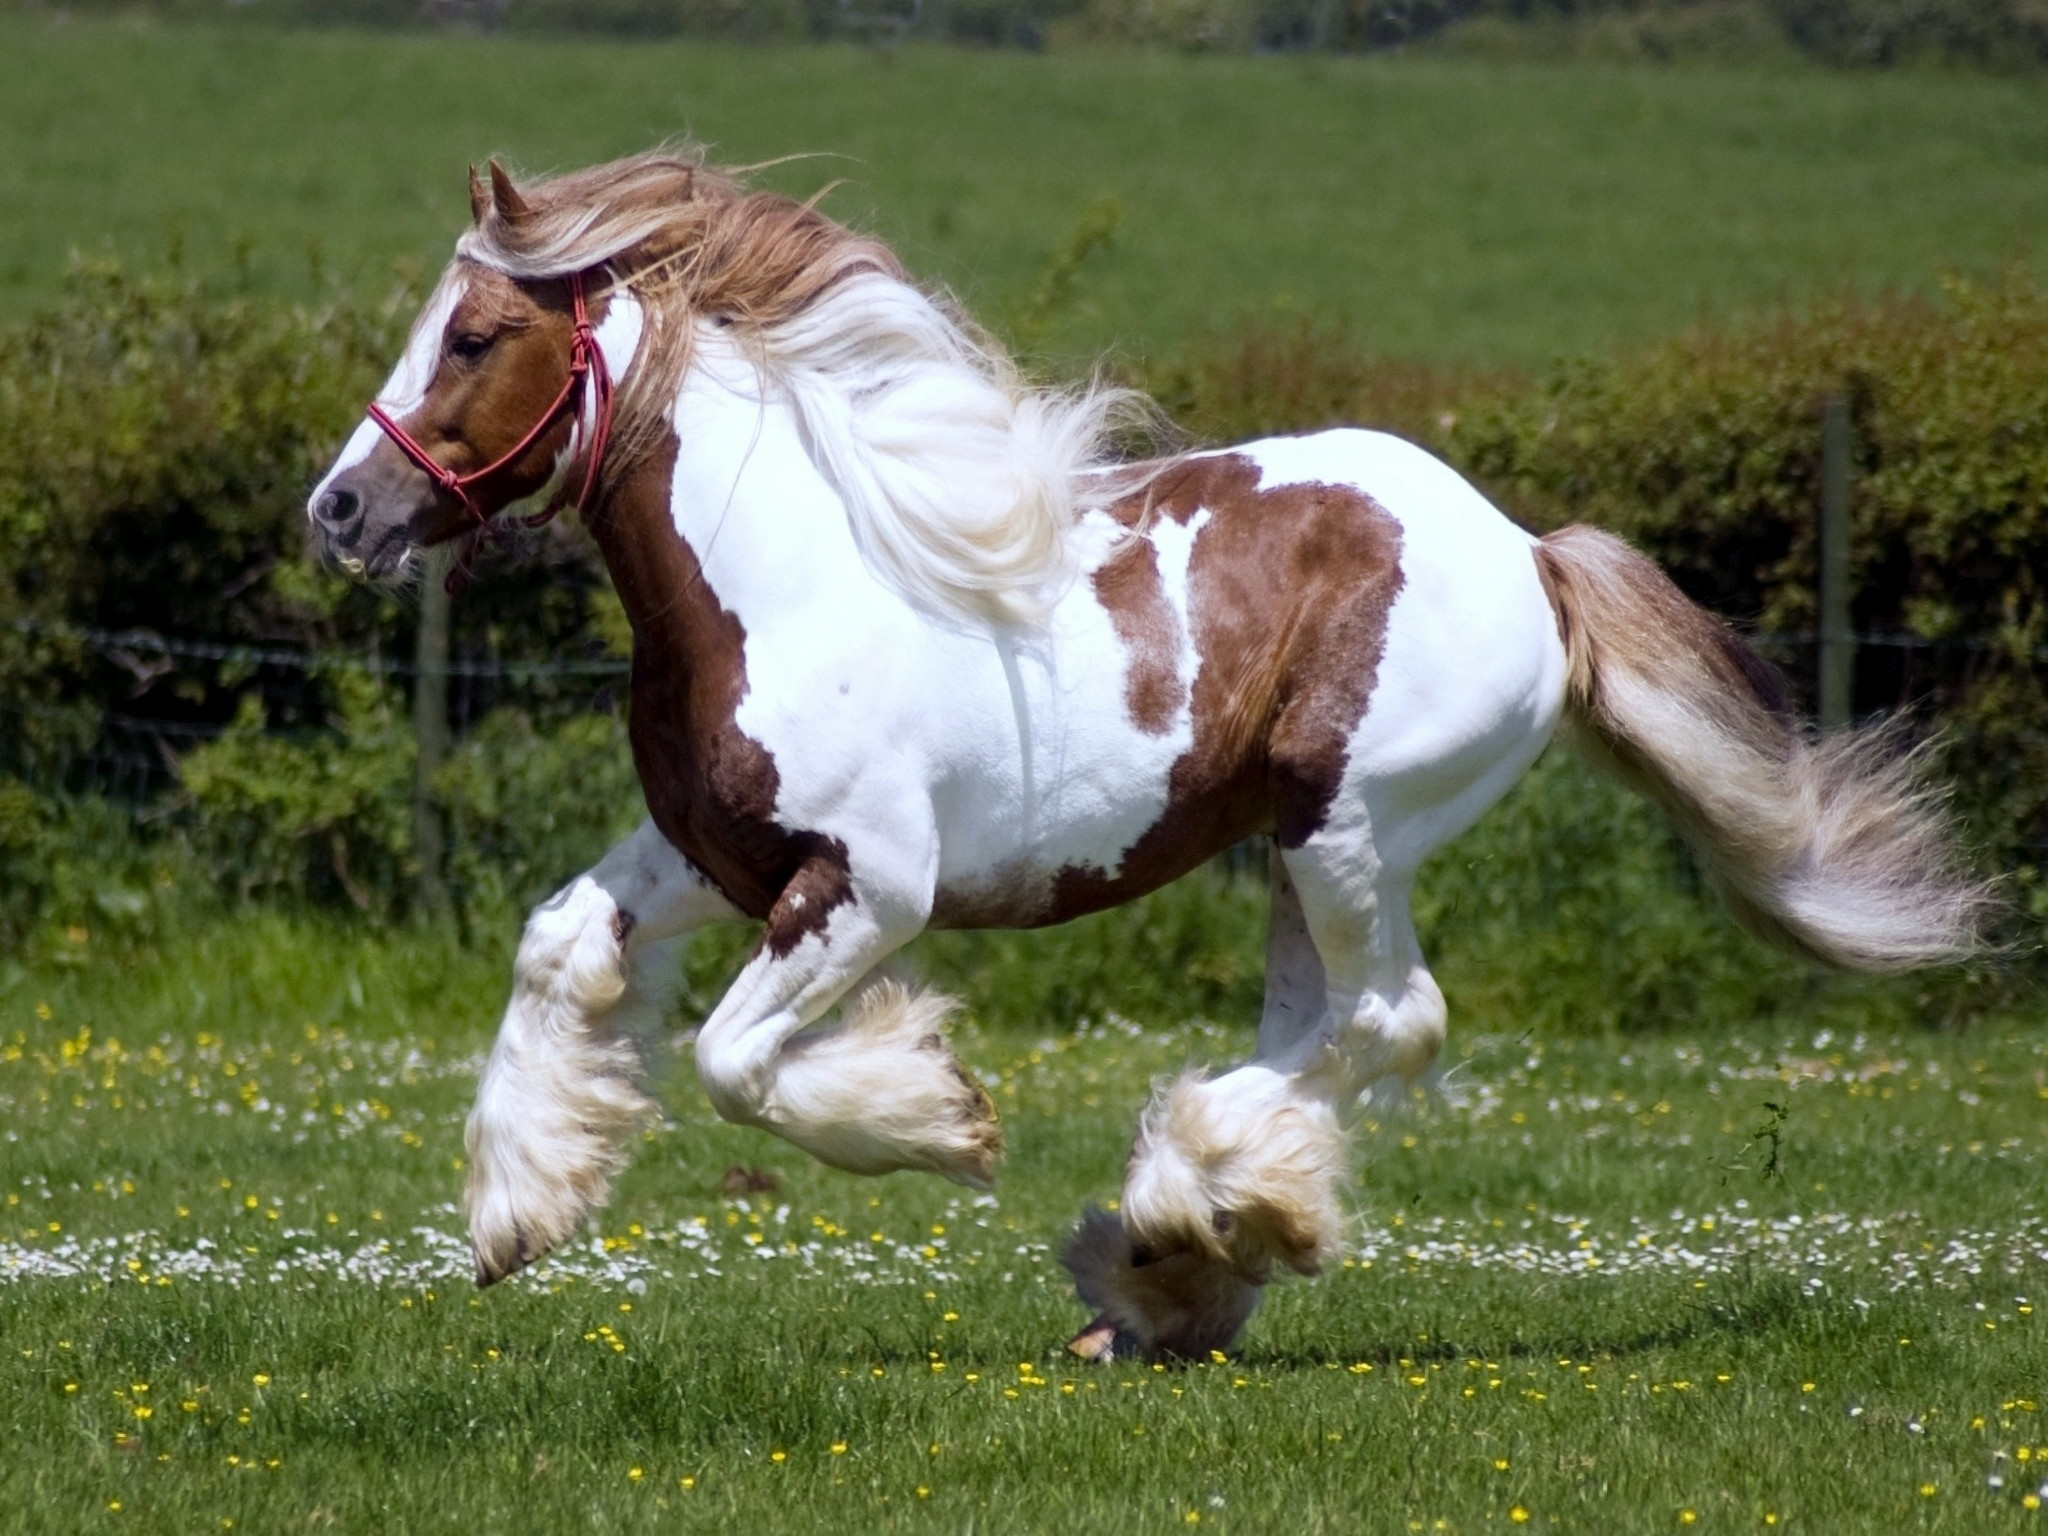 Res: 2048x1536, Clydesdale Horse Best Wallpaper 19916